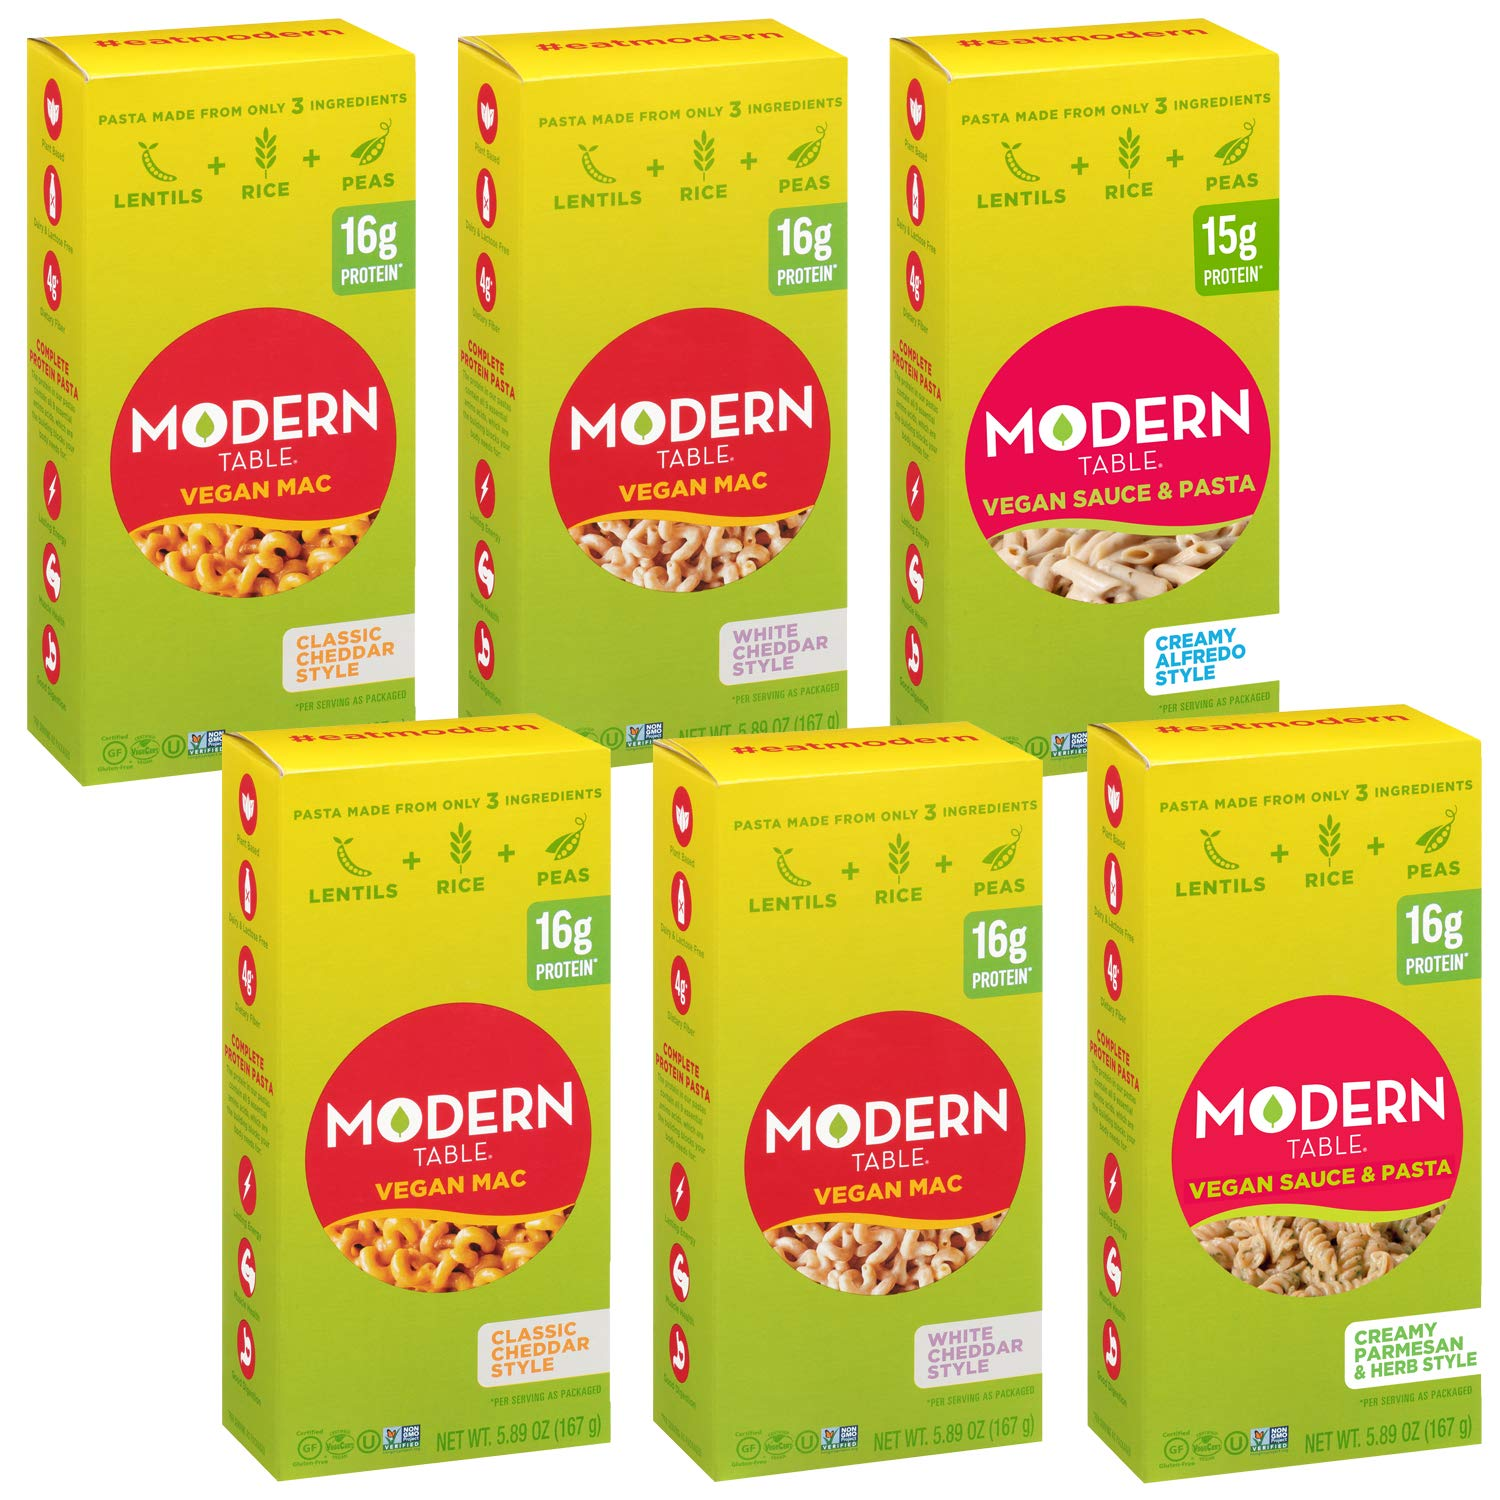 Modern sold New life out Table Vegan Pasta Meals 6 Count Variety Pack